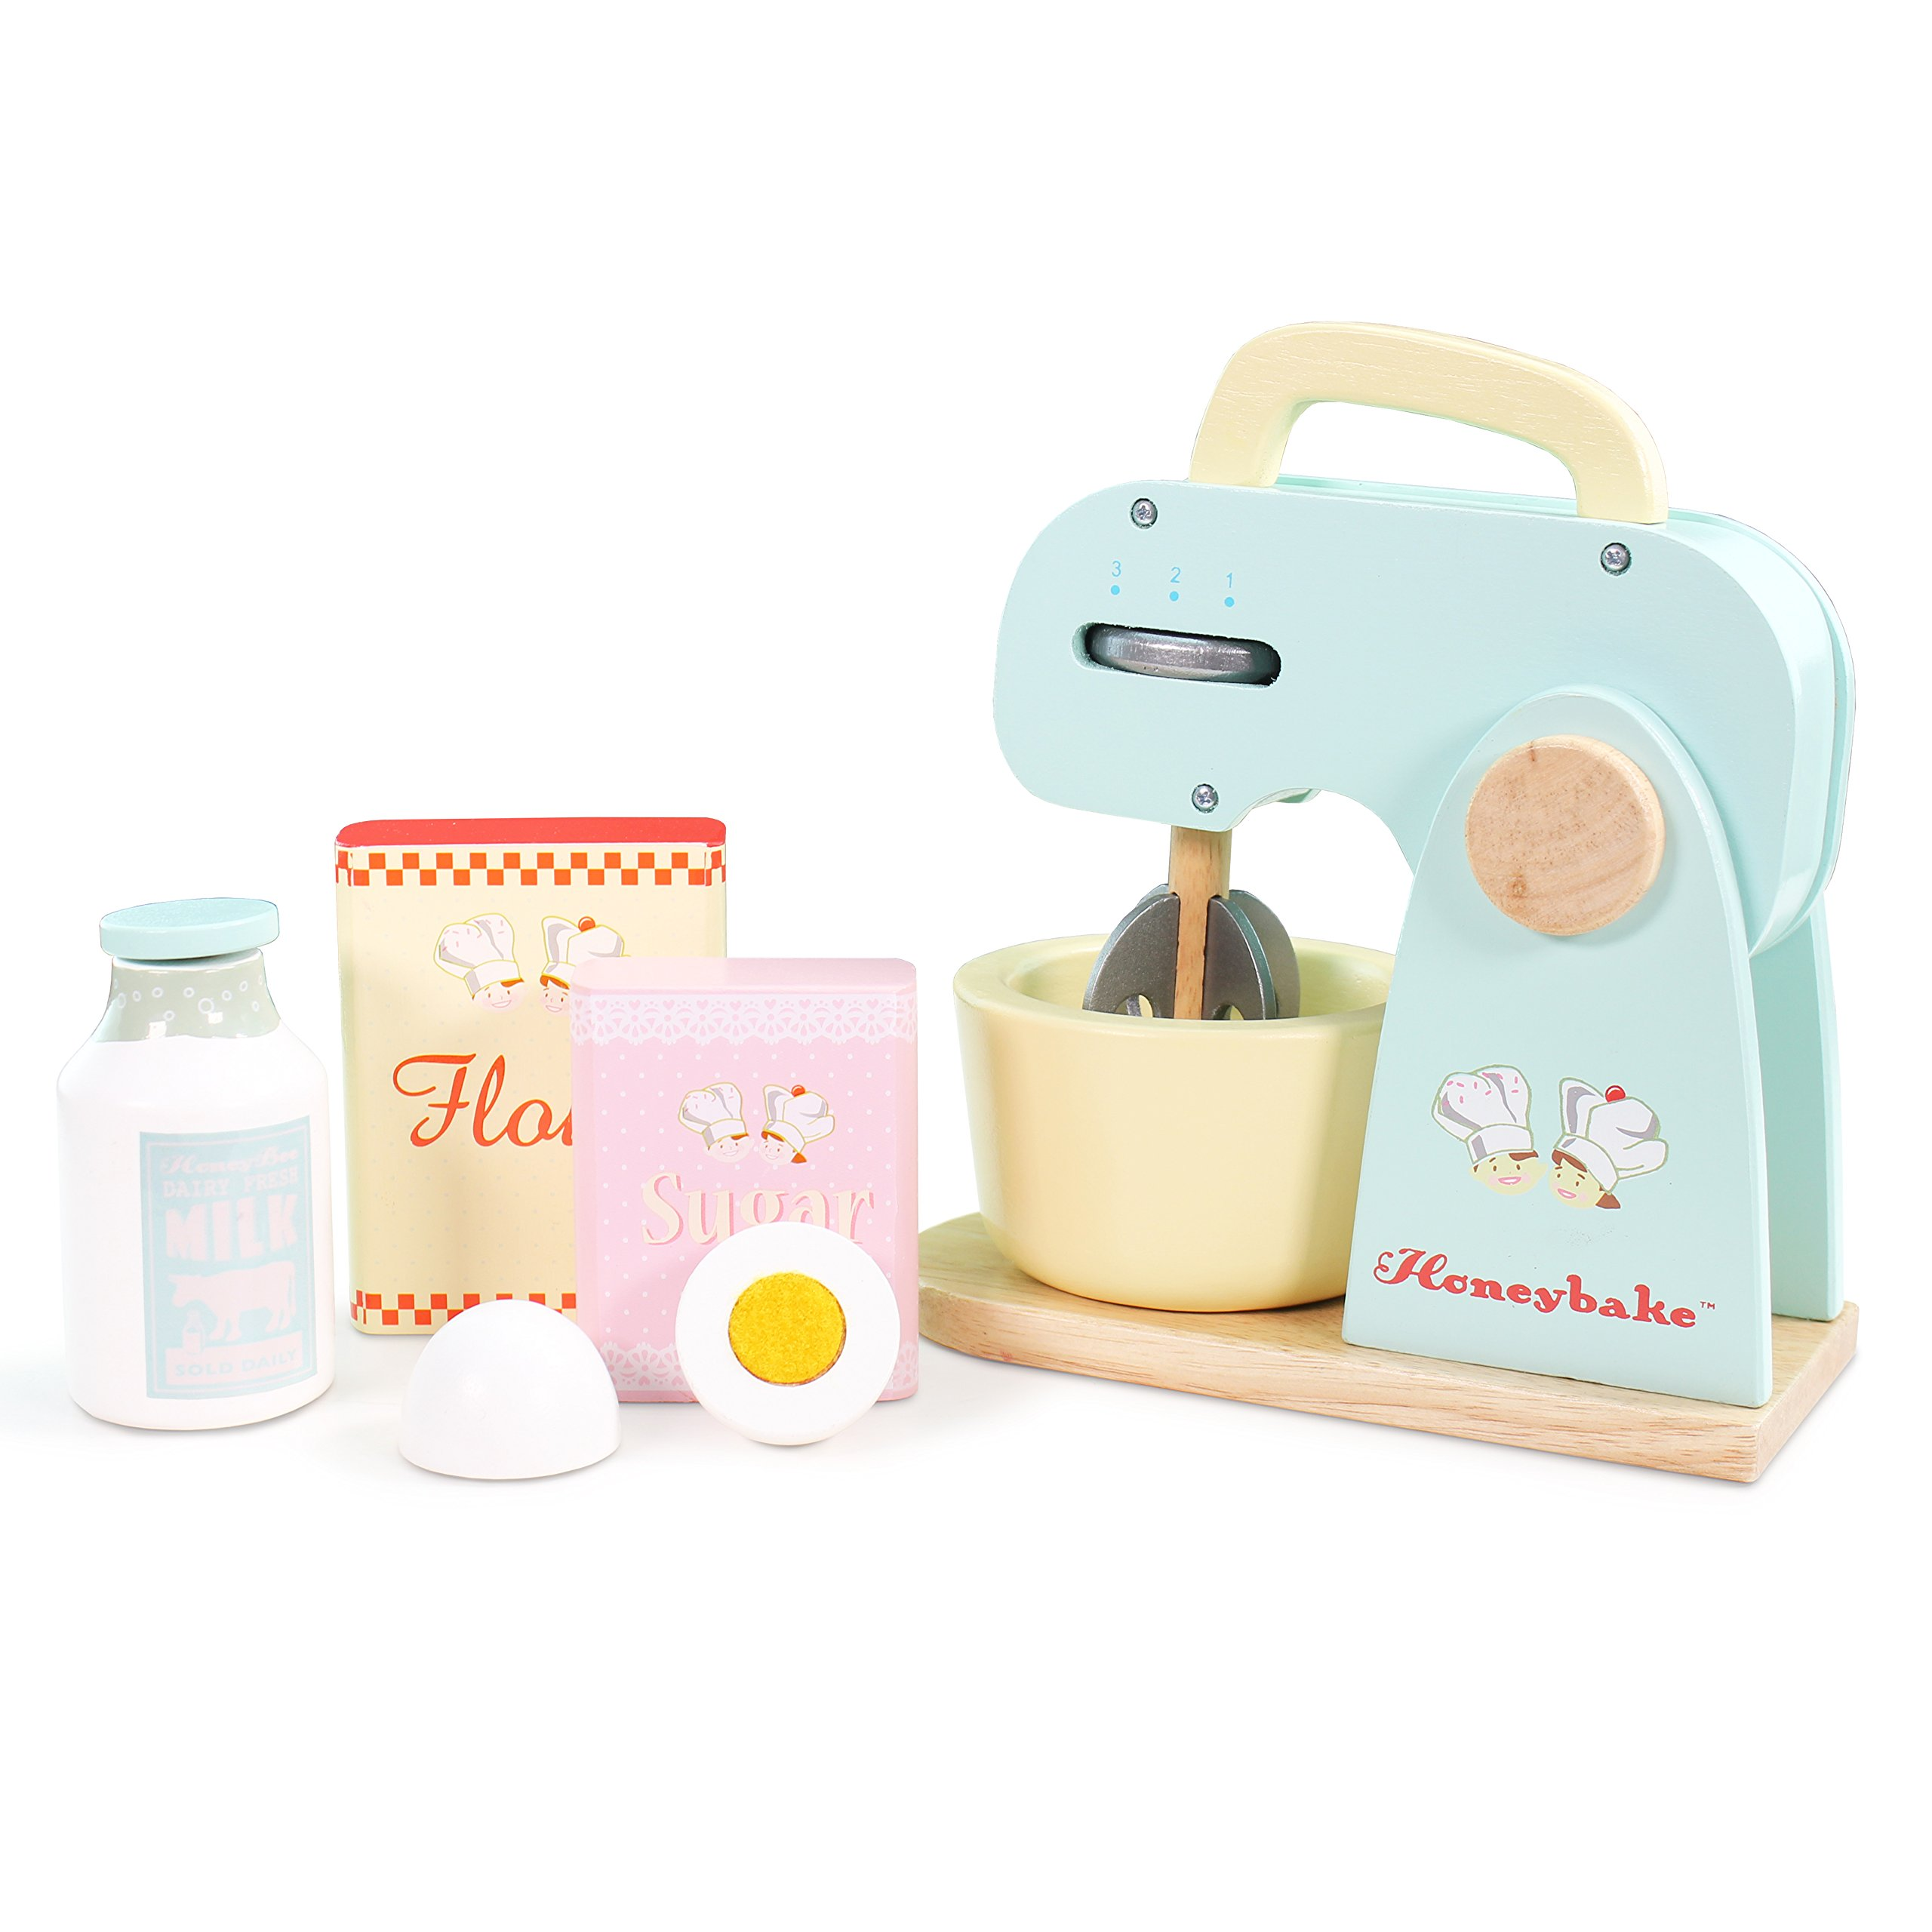 Le Toy Van Honeybake Collection Mixer Set Premium Wooden Toys for Kids Ages 3 years & Up by Le Toy Van